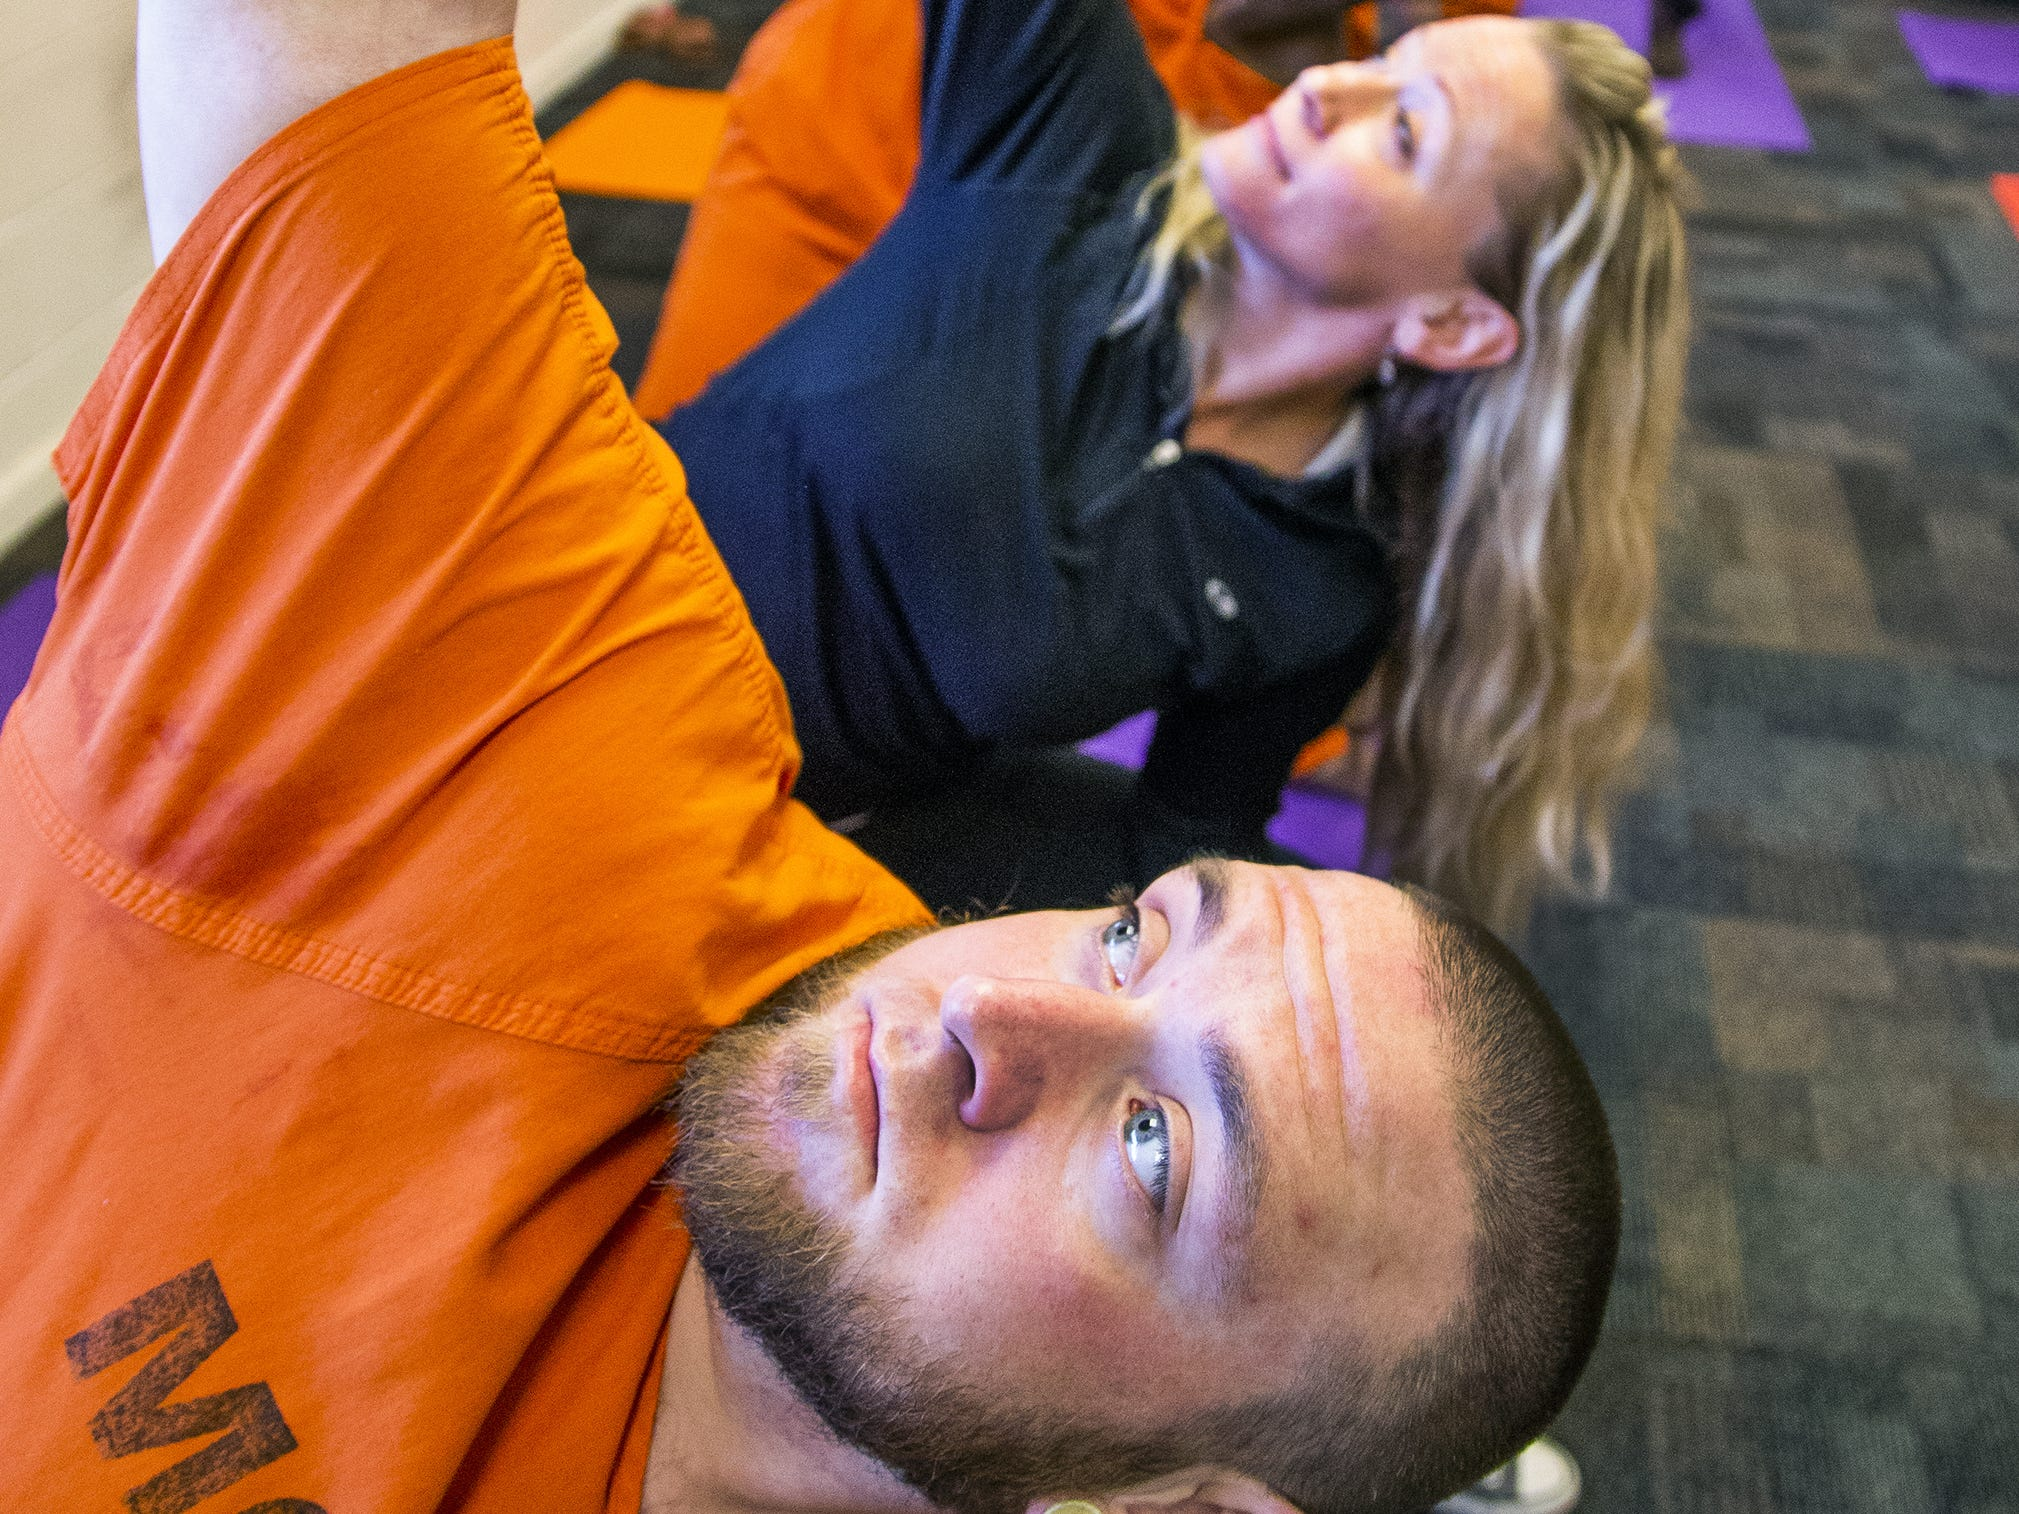 Volunteer Sara Wolf and inmate Preston James (foreground) practice yoga during a class offered by the Prison Yoga Project Phoenix at the Maricopa County Towers Jail complex on Jan. 11, 2019.